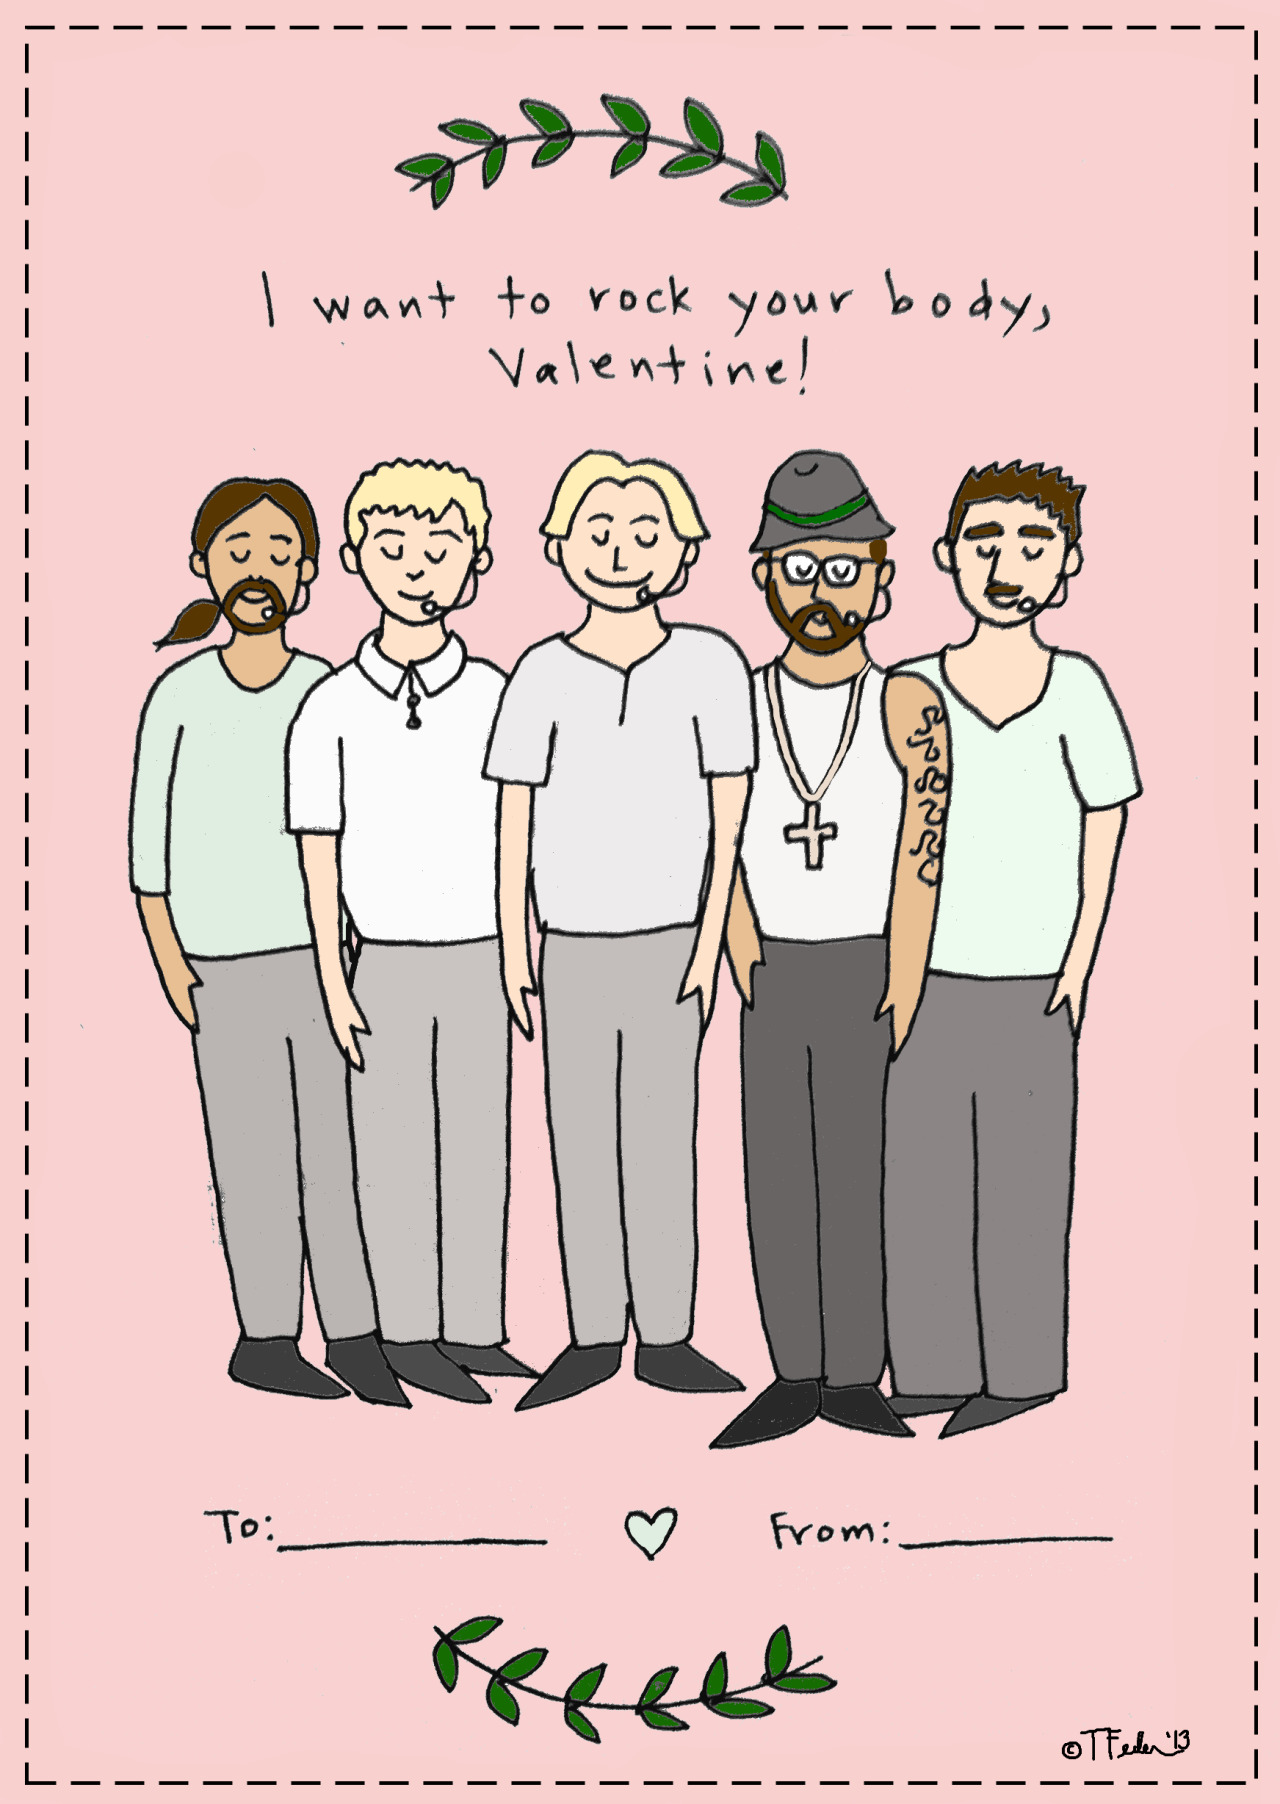 Backstreet Boys valentine (by Tyler Feder)